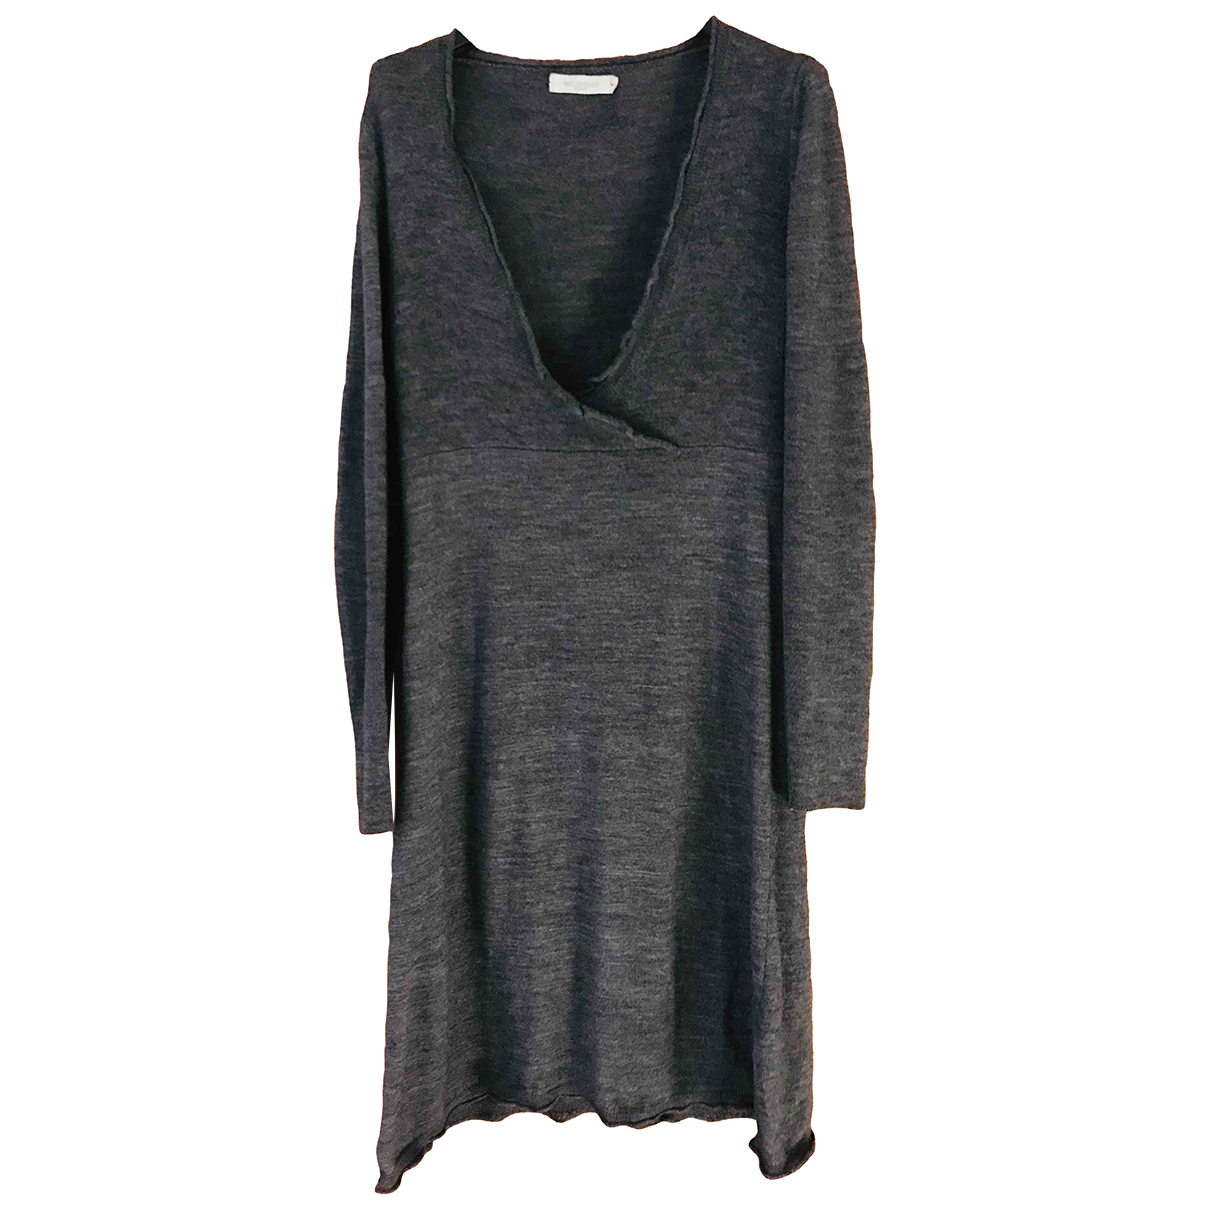 Emilio Pucci \N Anthracite Wool dress for Women 44 IT